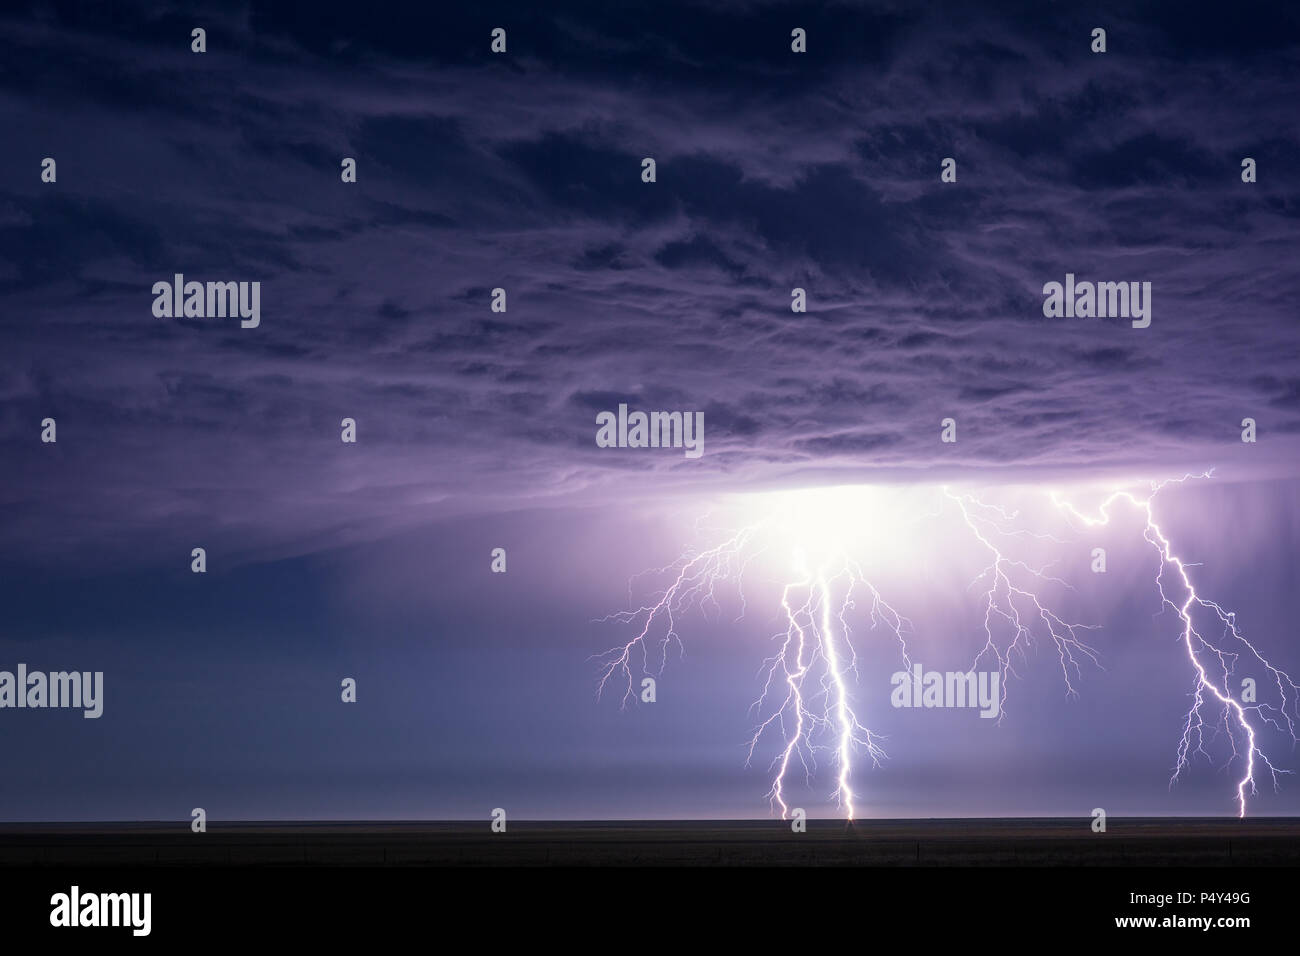 Lightning strikes and illuminates dramatic storm clouds during a summer thunderstorm near Eads, Colorado, - Stock Image